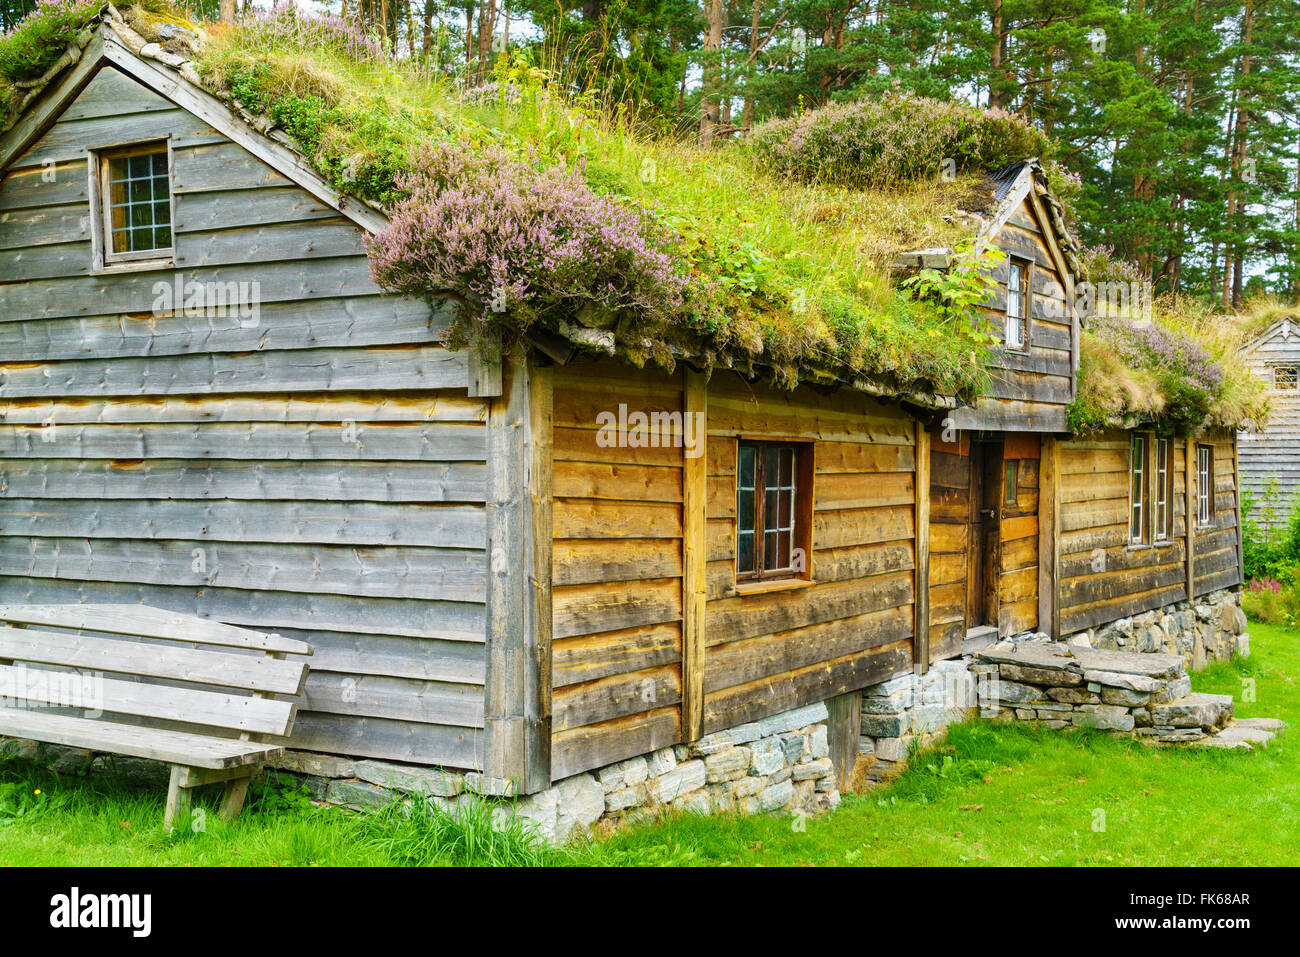 Sunnmore Museum, Alesund, More og Romsdal, Norway - Stock Image